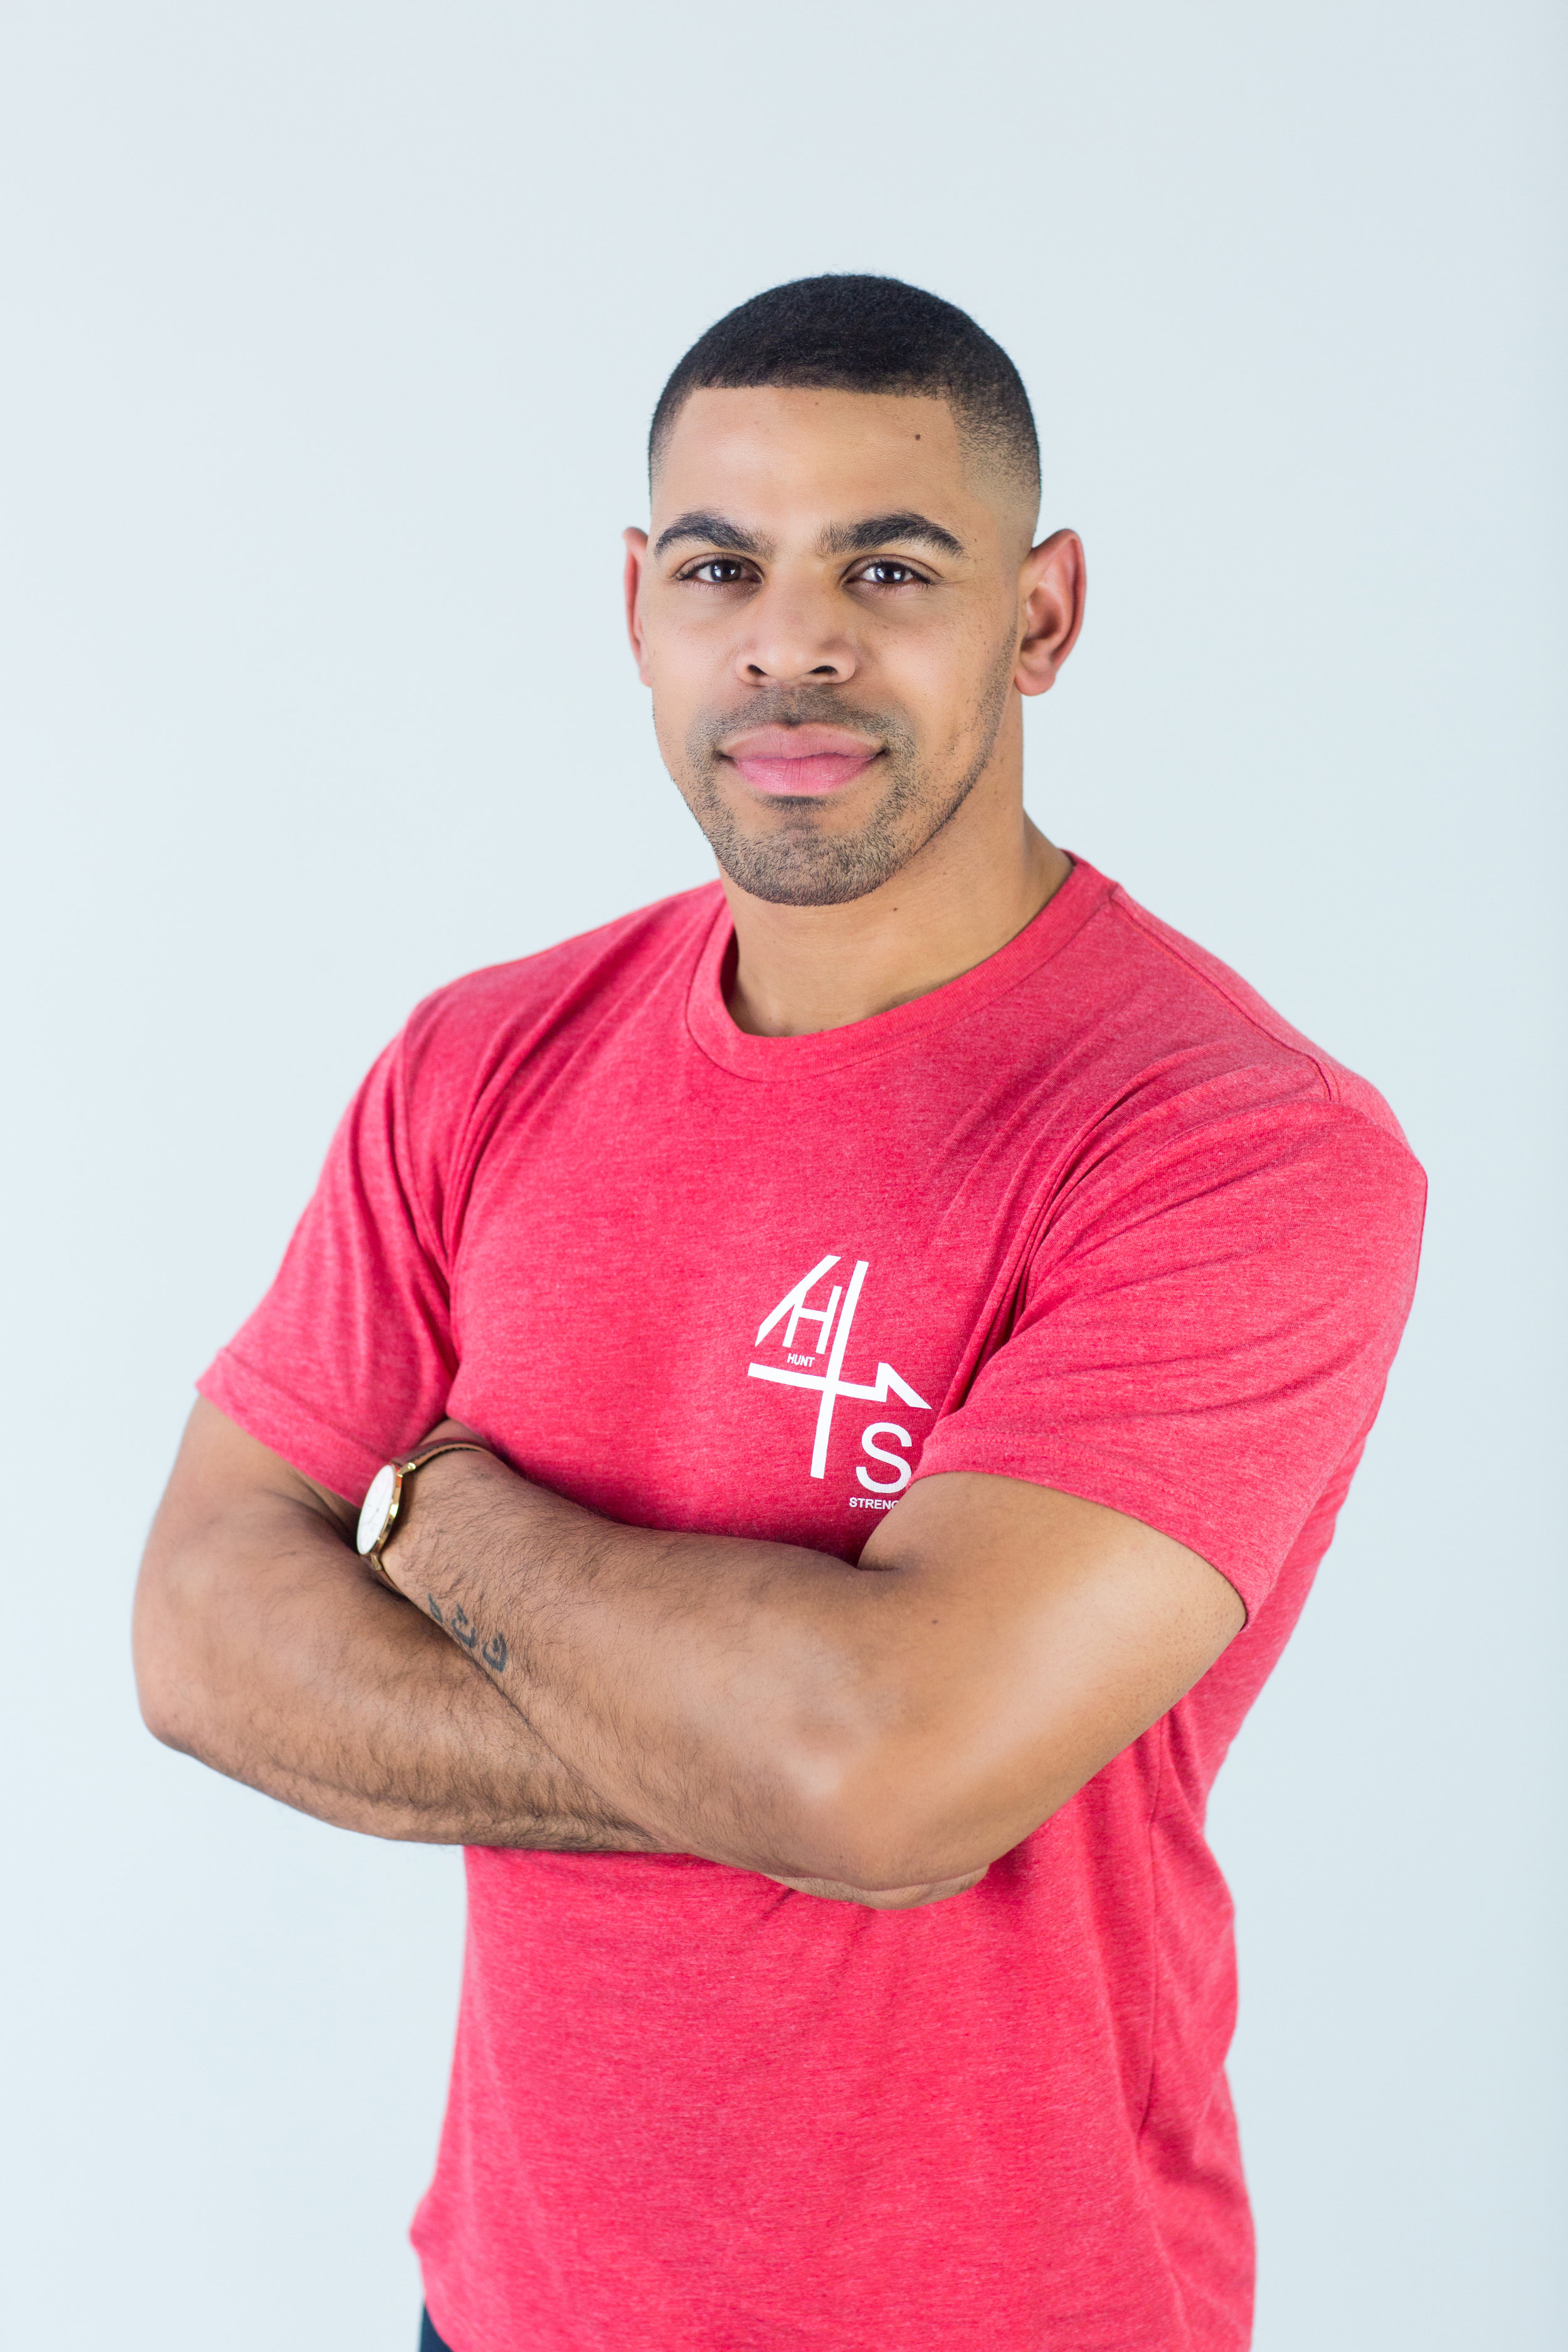 About Me: - I own and operate afitness studio inFairfield, New Jersey. Withthis, I've been blessed towork with clients from all walks of life.This experience has givenme opportunities to helppeople reach their goals. Whether it be fat loss, athletic performance, muscle gain, or just moving without pain, I've worked with them all.If you would like to know more about my programs and interested in working with me, I can be reached at my email provided below.also make sure to visit my site, Cornellhunt.com or my studio website at HuntforStrength.com.Contact:(C) 732-558-0901(E) CornellDHunt@Gmail.com